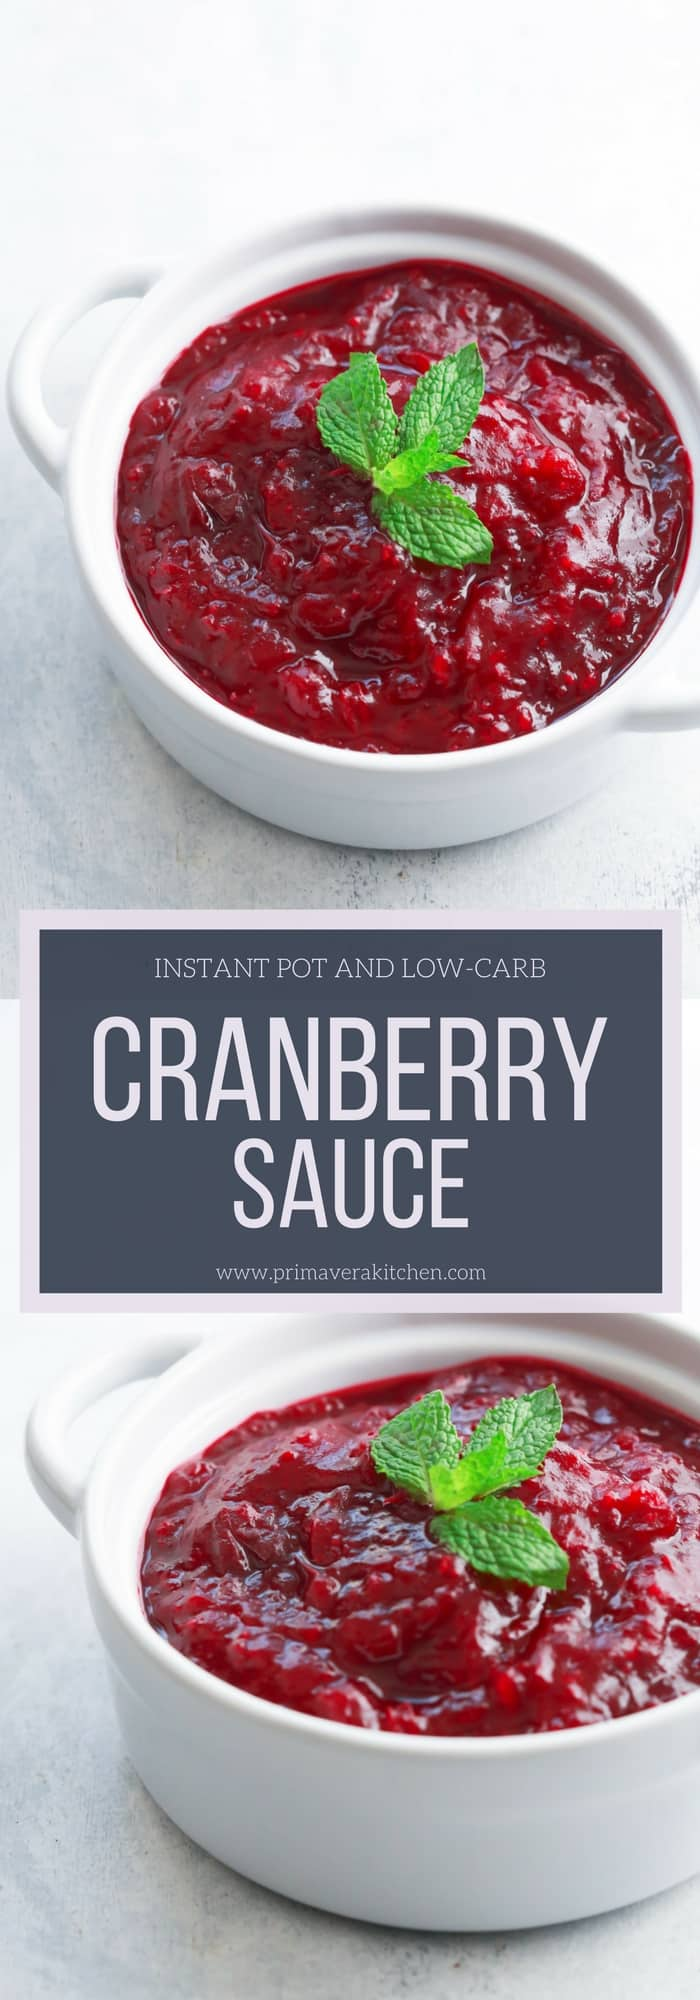 This Instant Pot Low-carb Cranberry Sauce is the easiest and fastest recipe you will ever make for the holiday season. It's delicious and more important it's sugar-free!